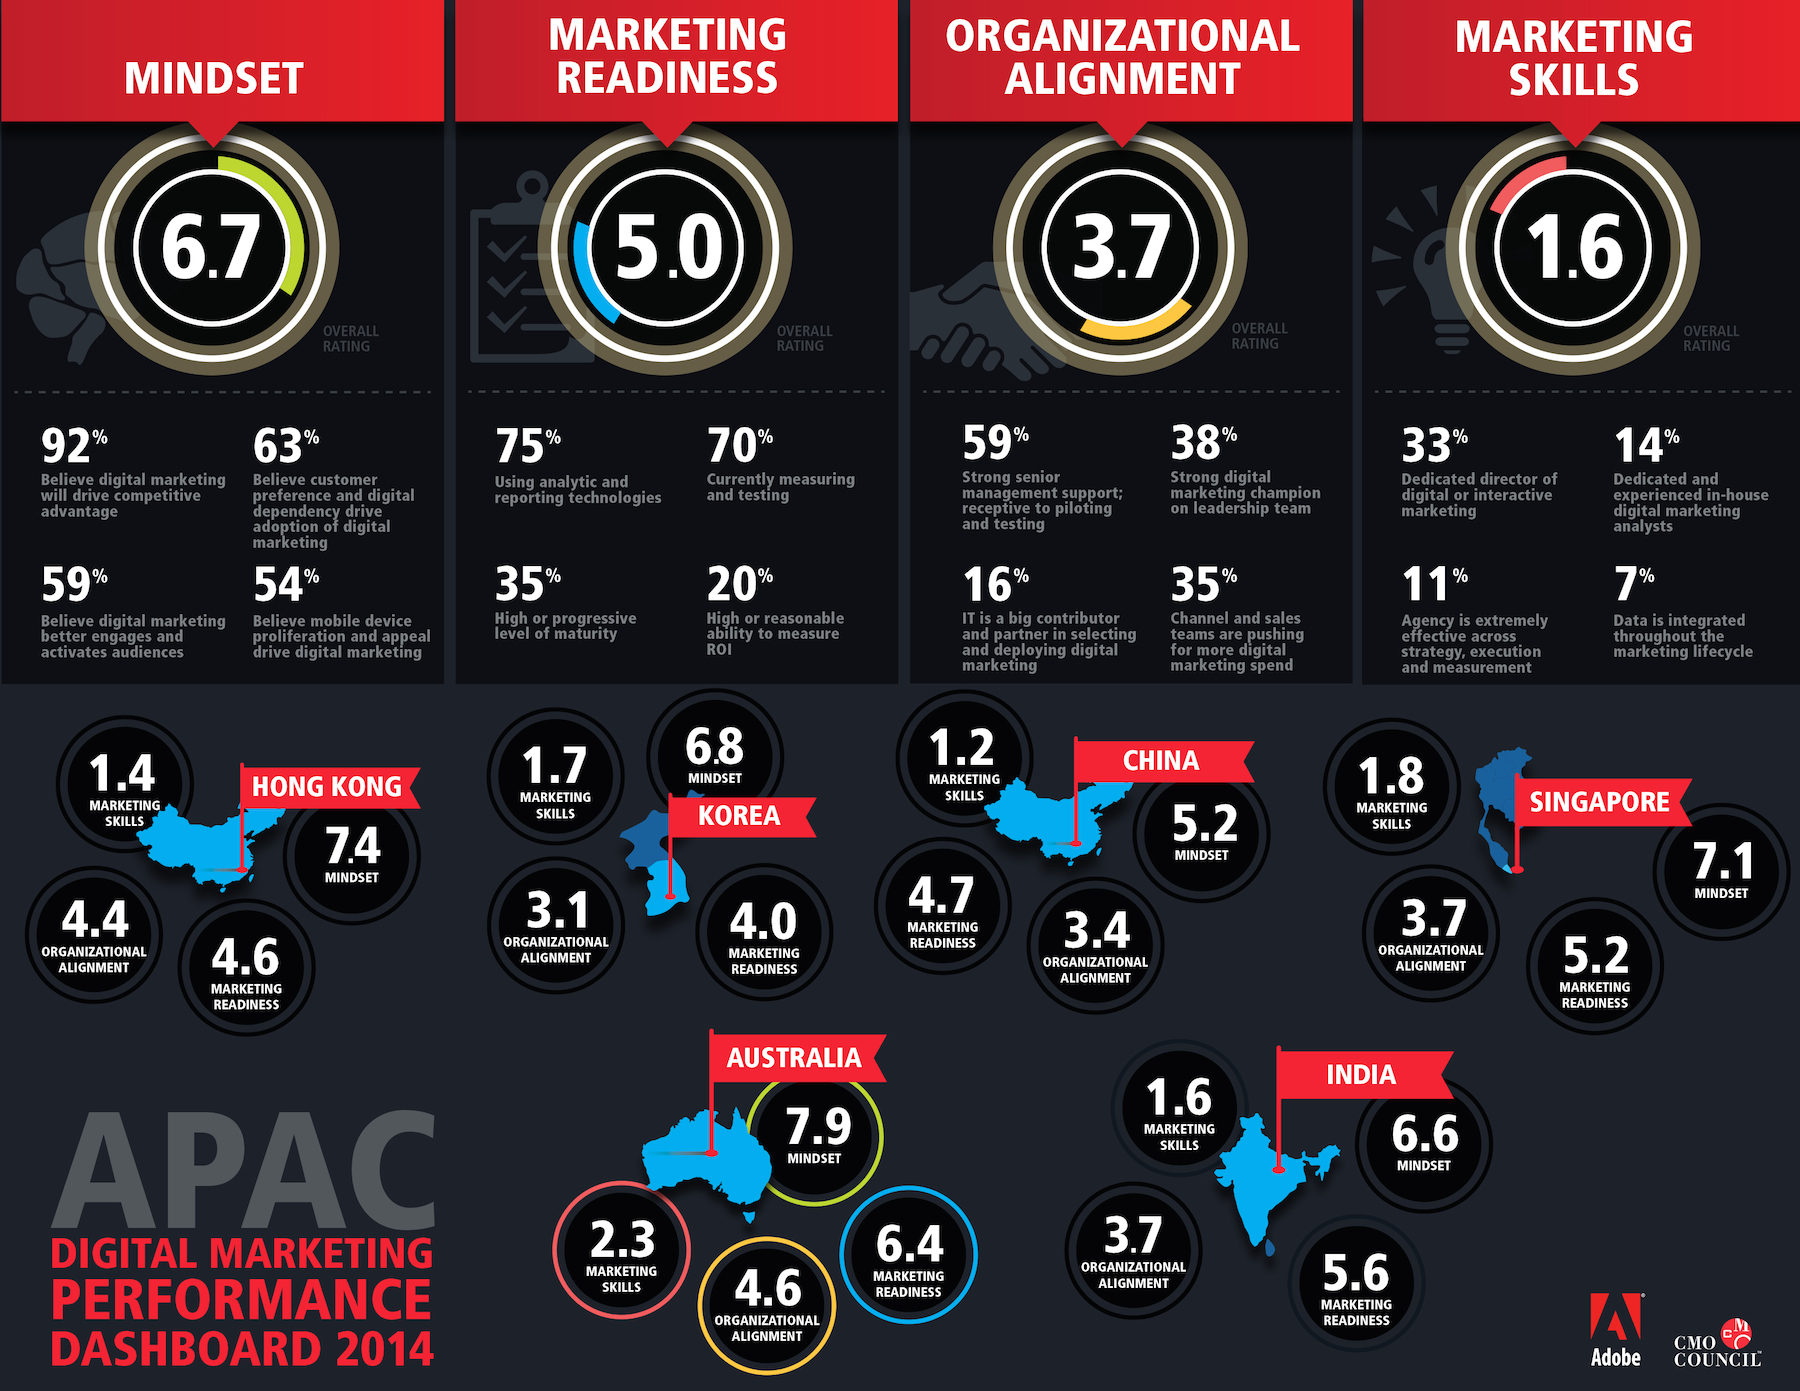 Adobe_APAC_infographic_FINAL_2014_9-16-14